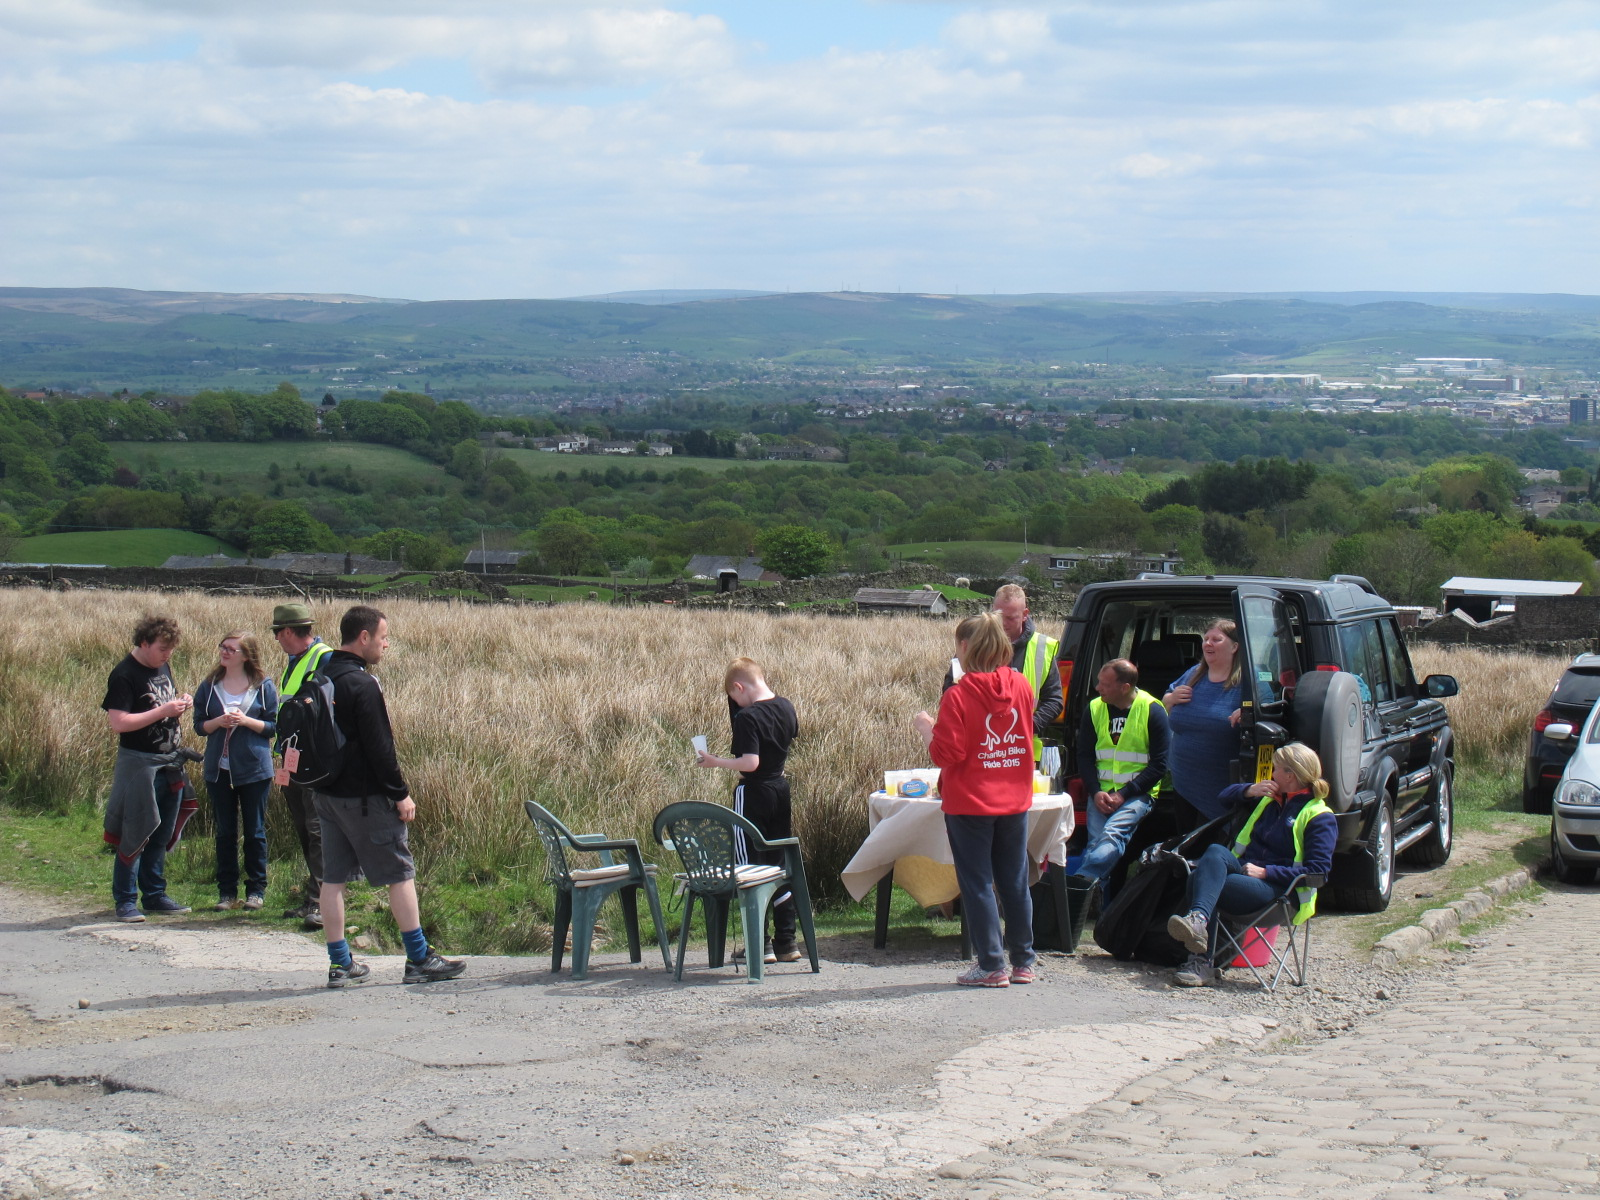 Rooley Moor Road - Checkpoint 4 #3